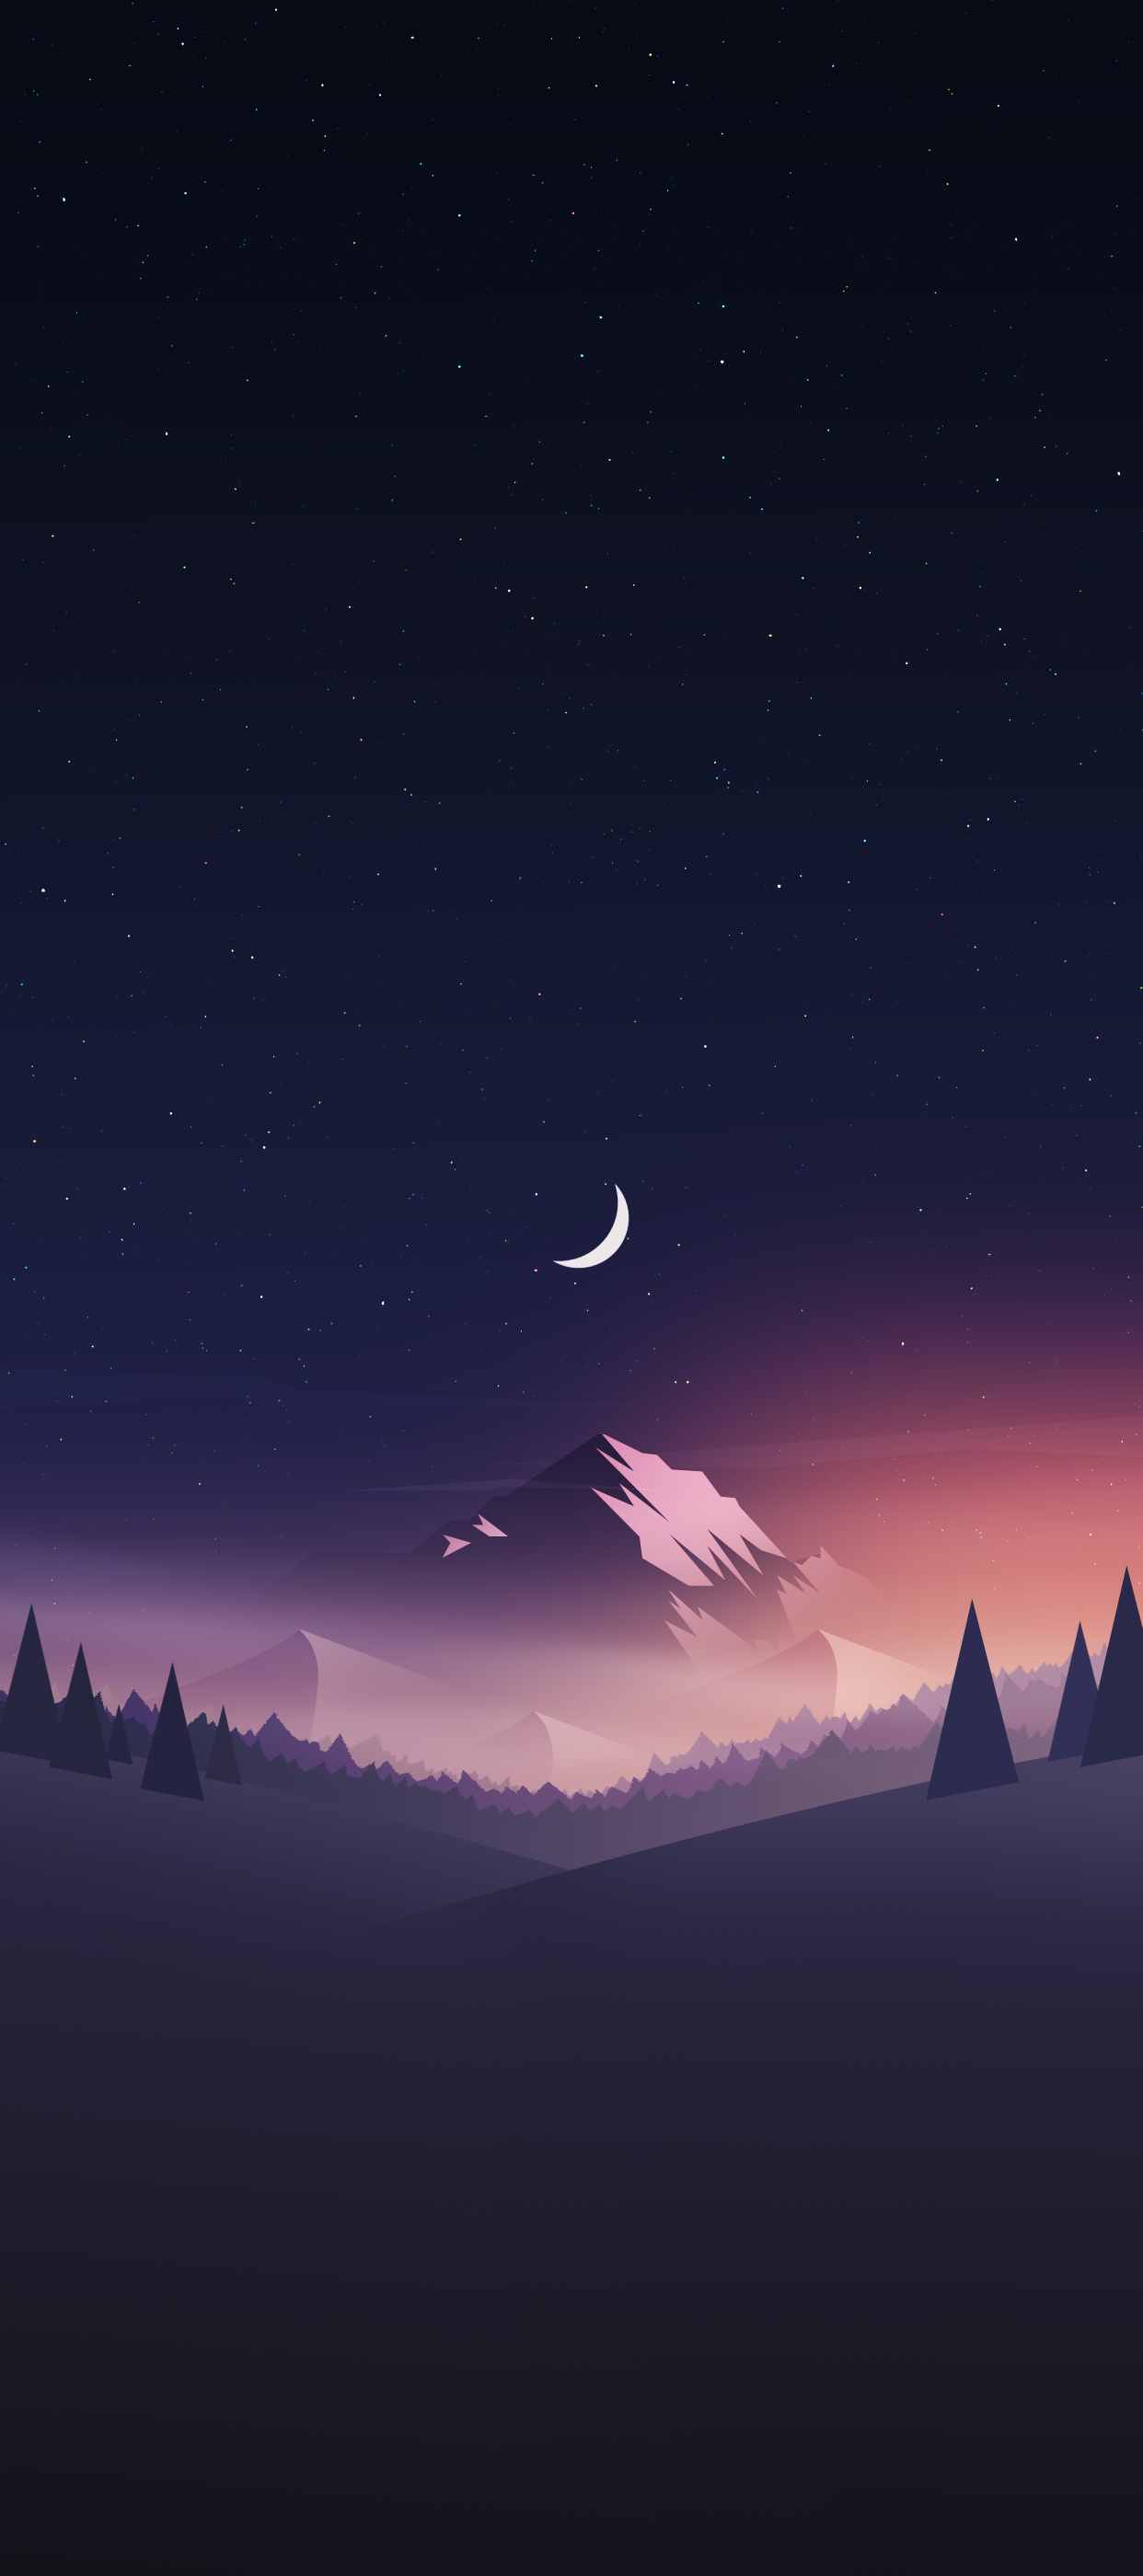 mountain valley iphone wallpaper axellvak night mountain deer